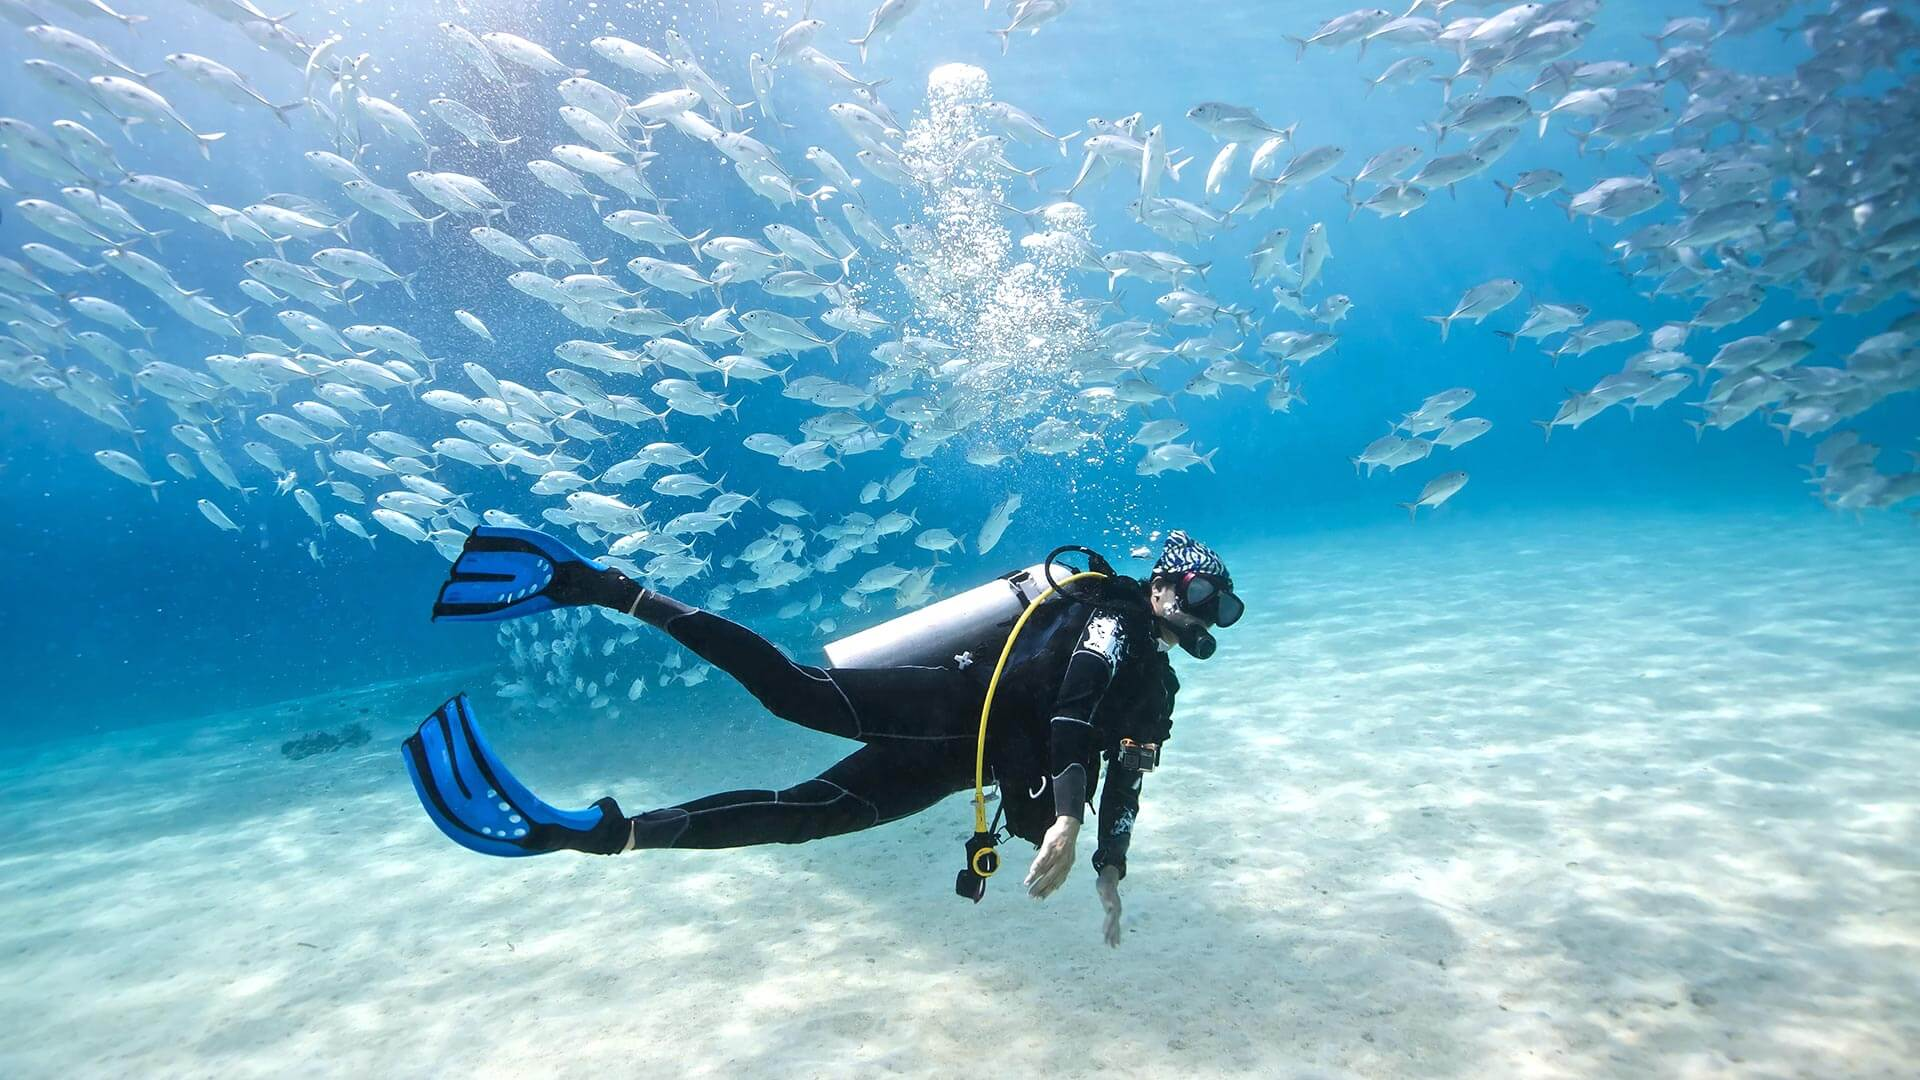 Scuba Diving In Phuket, Thailand  Aussie Divers Phuket